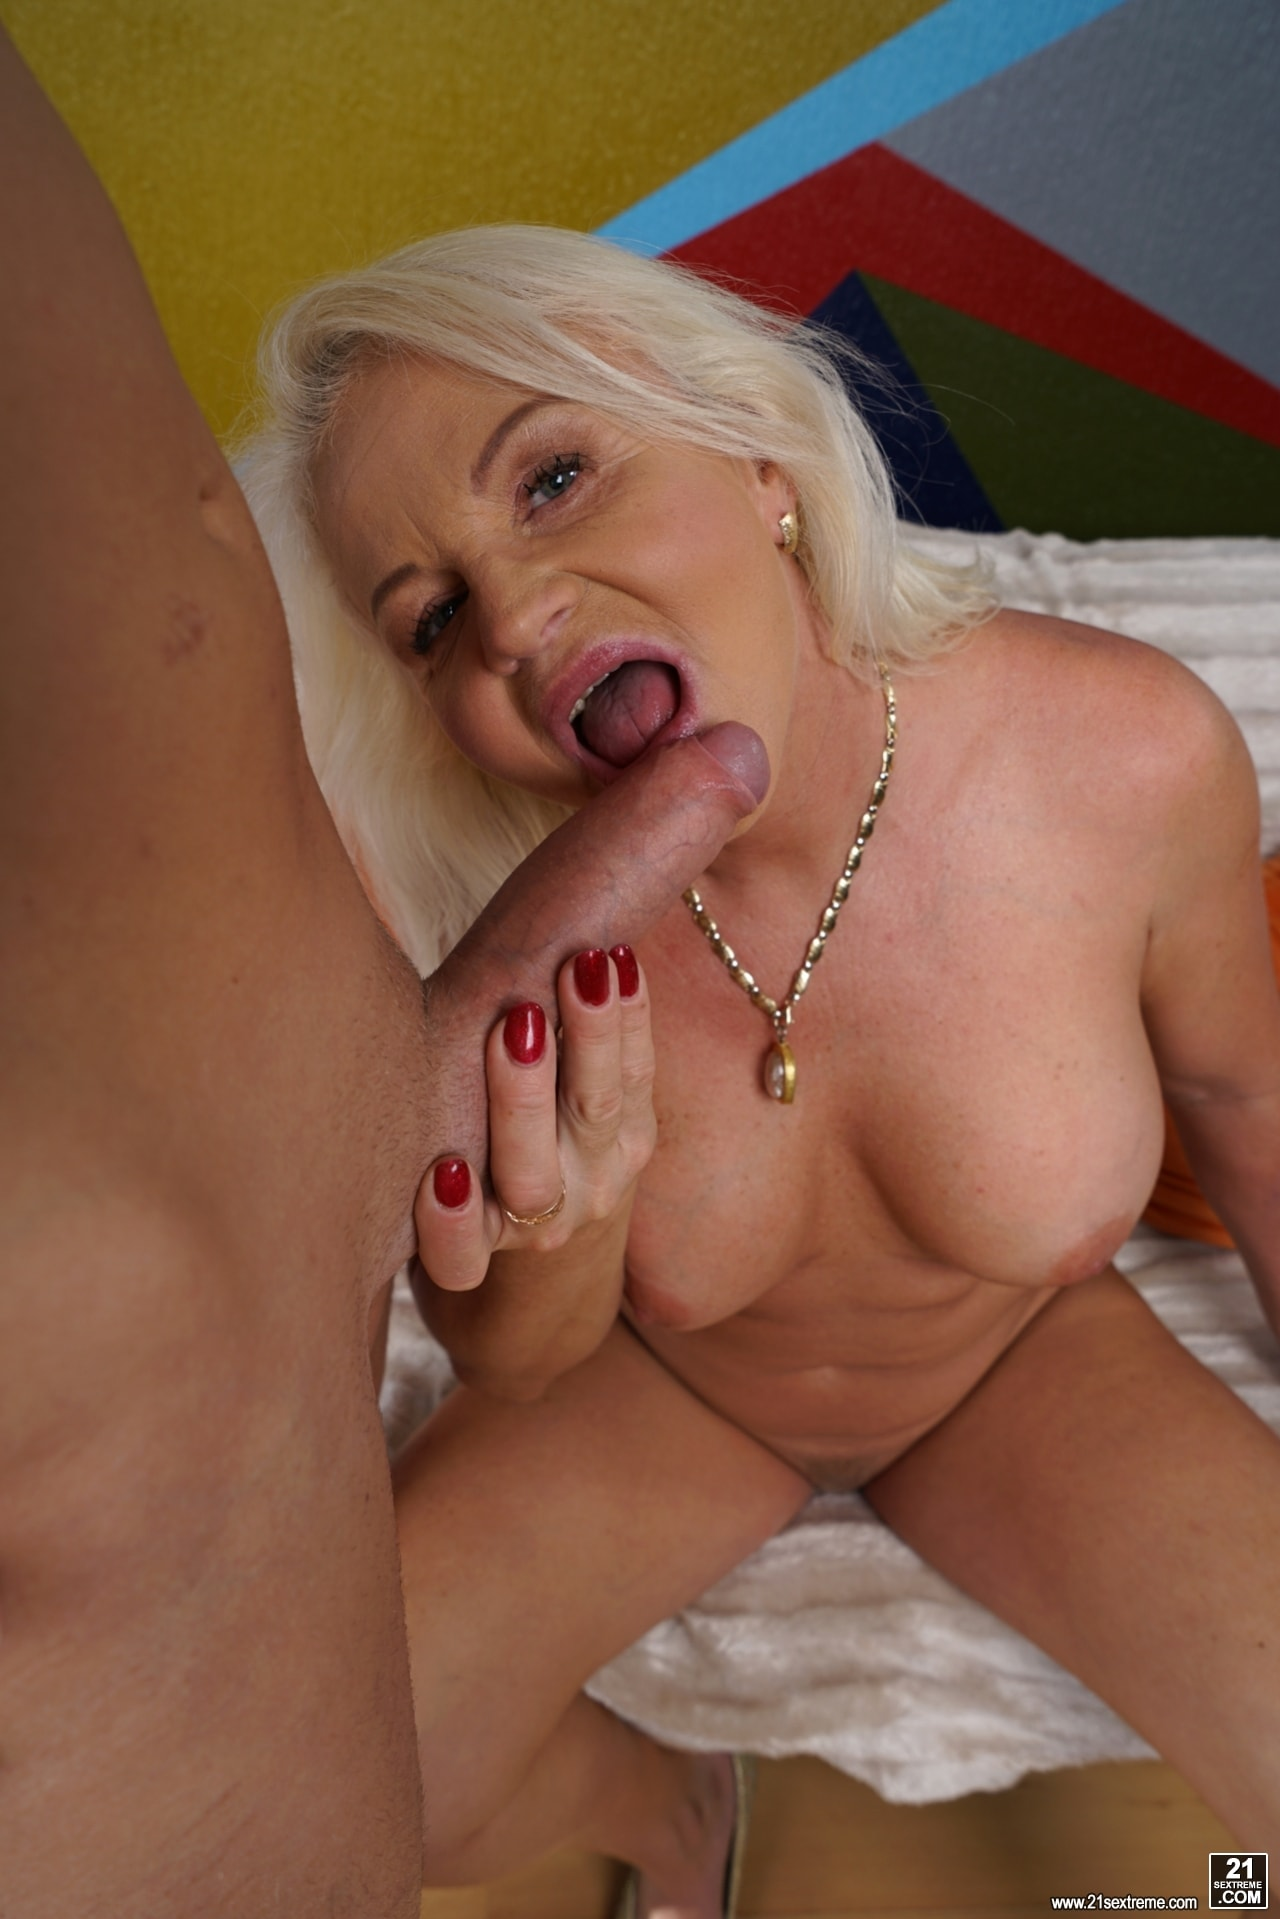 21Sextury 'Trying Antique Pussy' starring Anett (Photo 136)